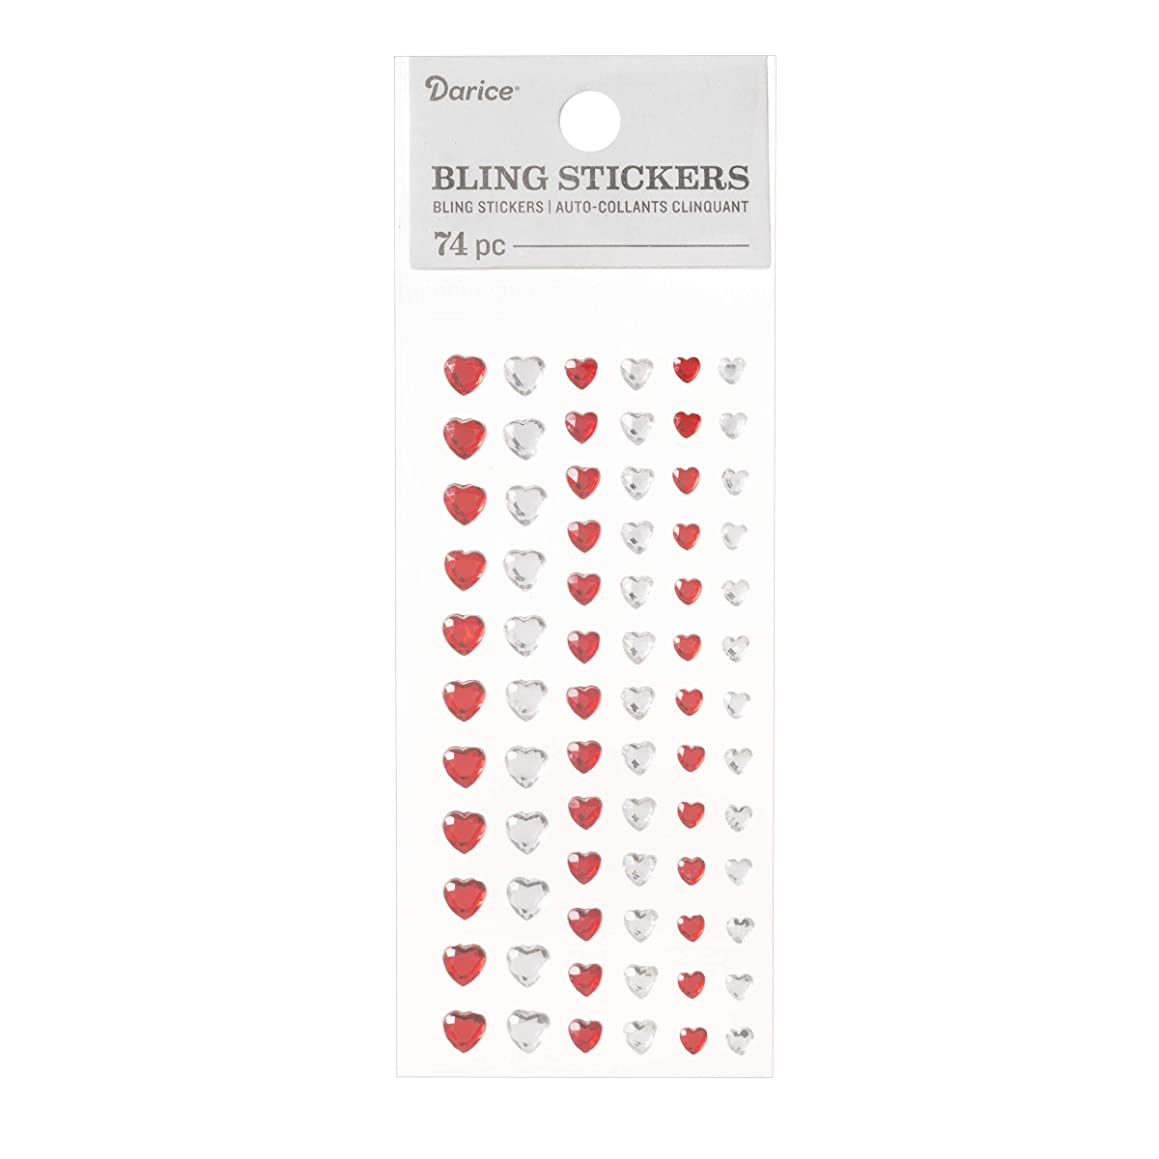 Darice 30053419 Bling Stickers Clear/Red